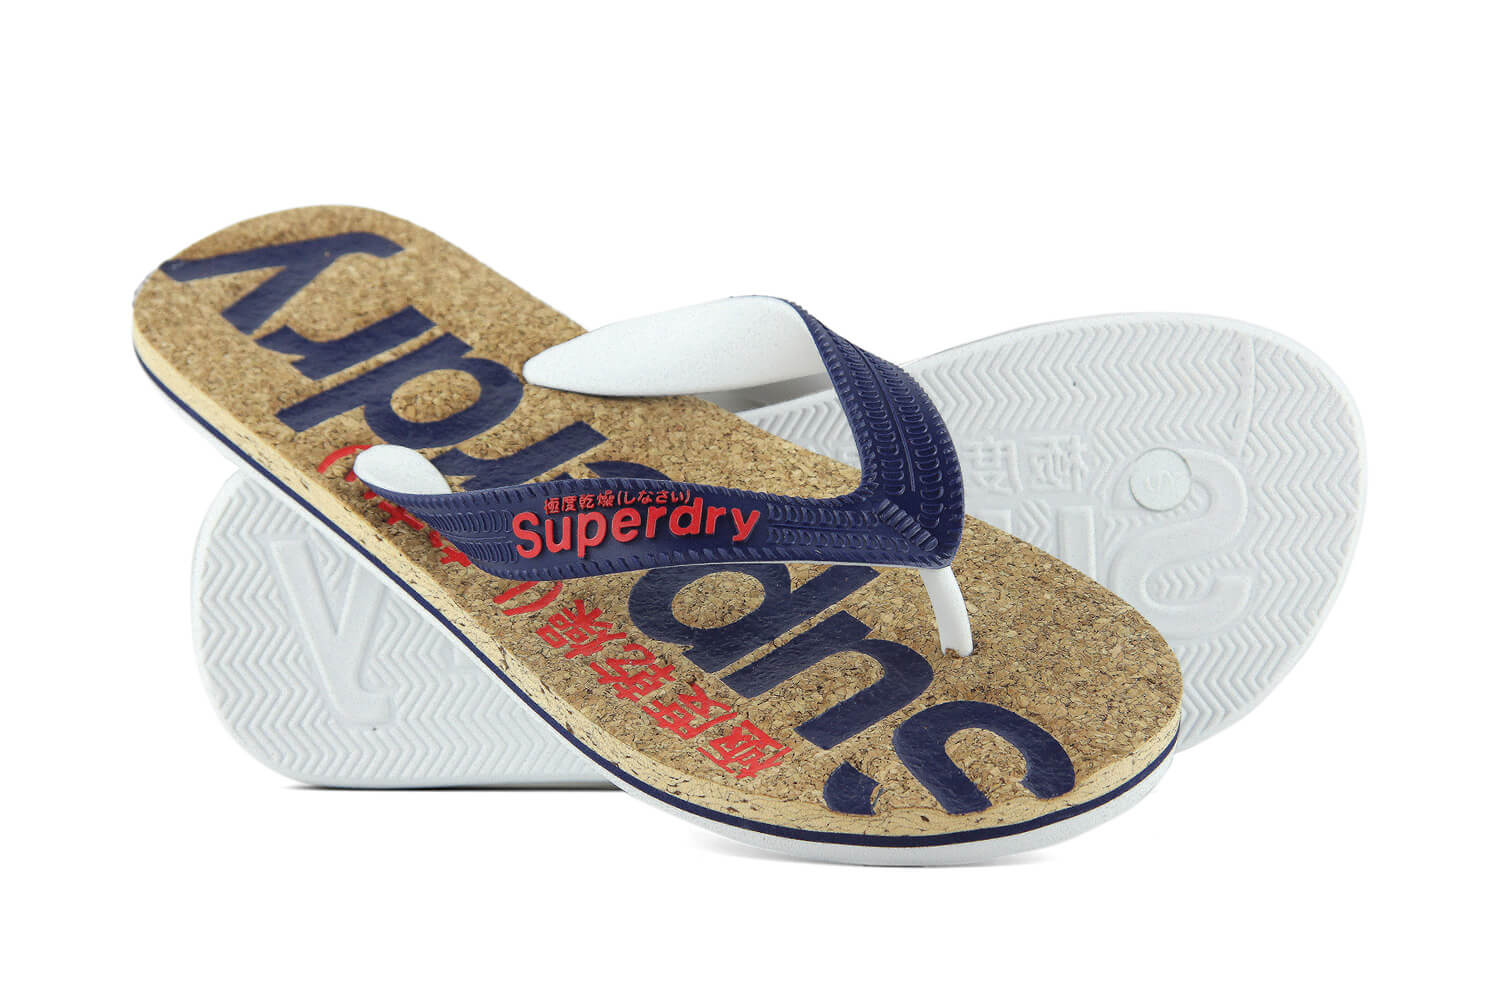 Mf3002so Superdry Cork Color Flip Flop Wer